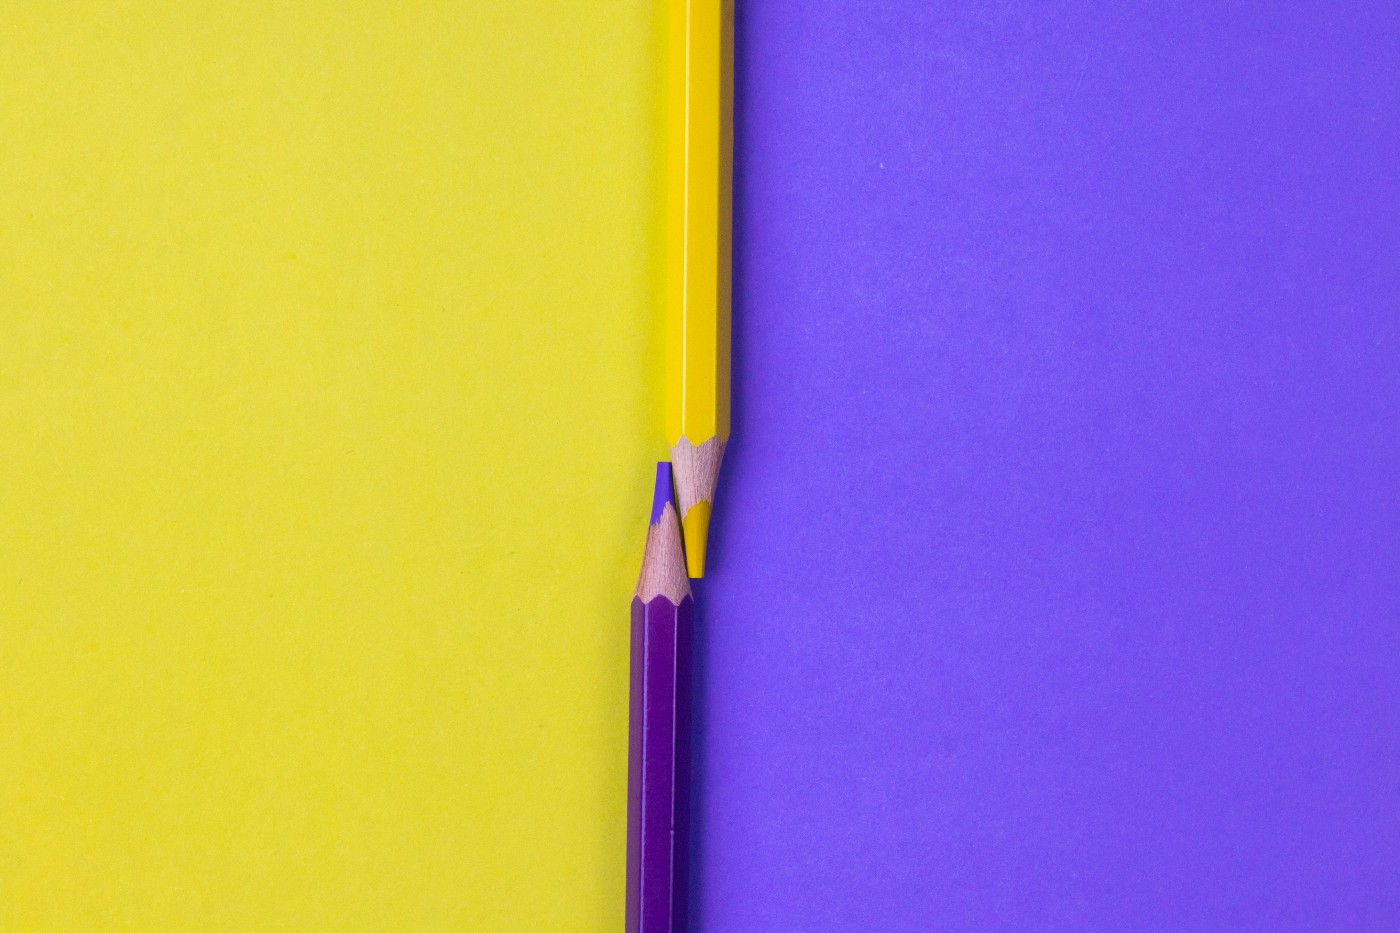 Purple and yellow crayons resting on purple and yellow background